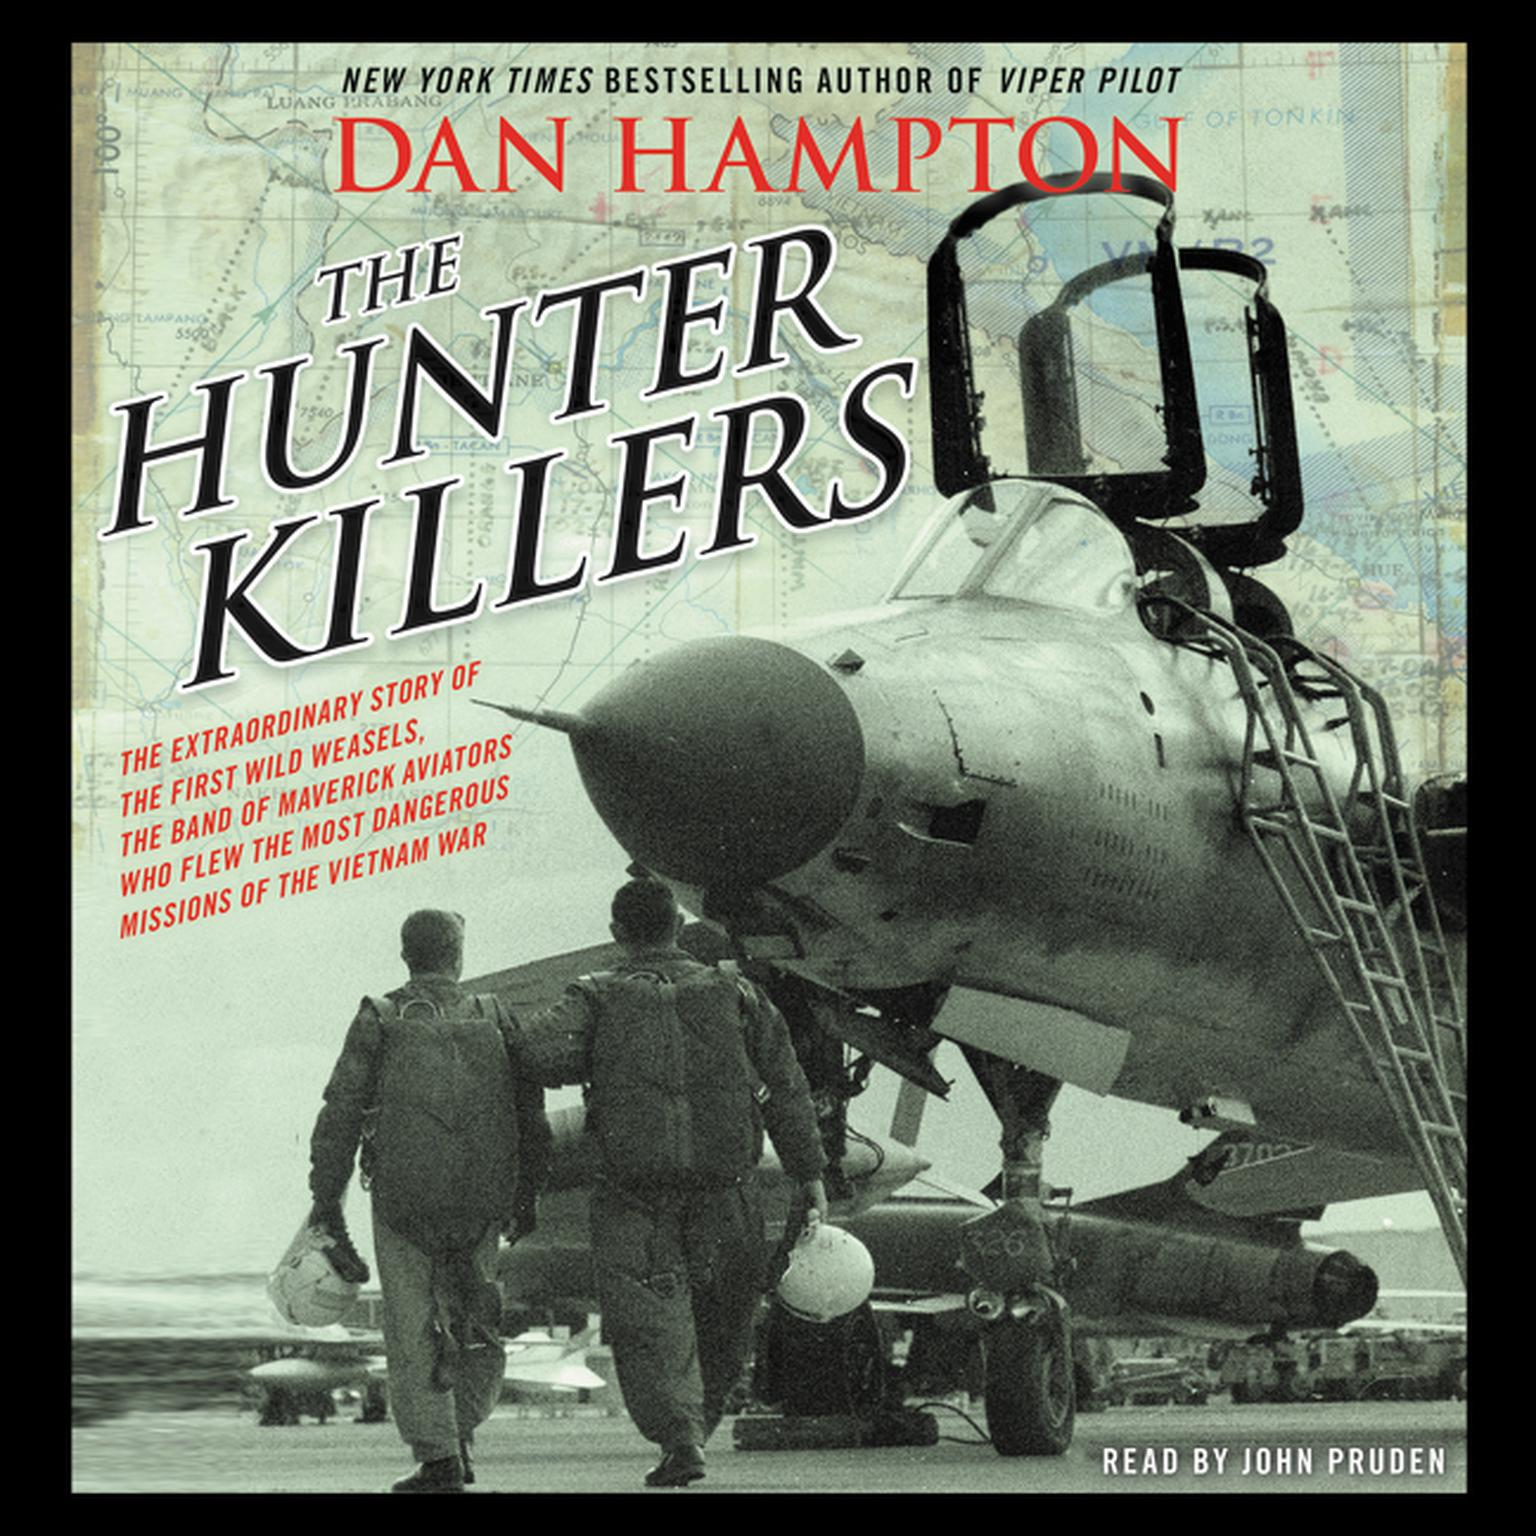 Printable The Hunter Killers: The Extraordinary Story of the First Wild Weasels, the Band of Maverick Aviators Who Flew the Most Dangerous Missions of the Vietnam War Audiobook Cover Art